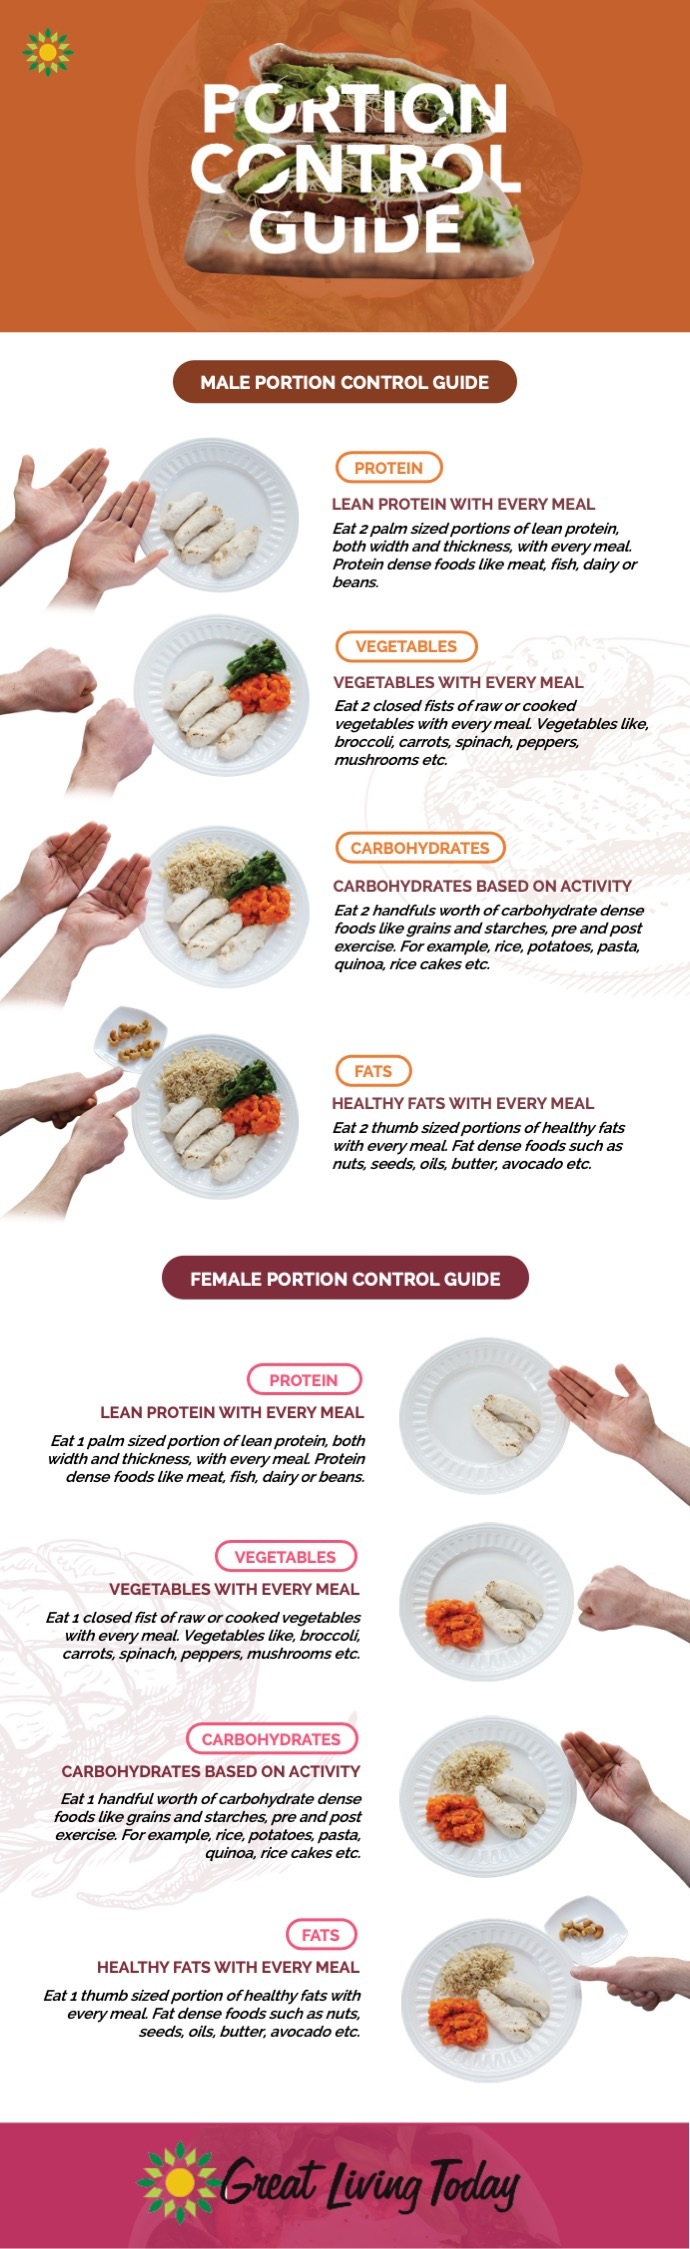 Infographic detailing Portion Control for men and women